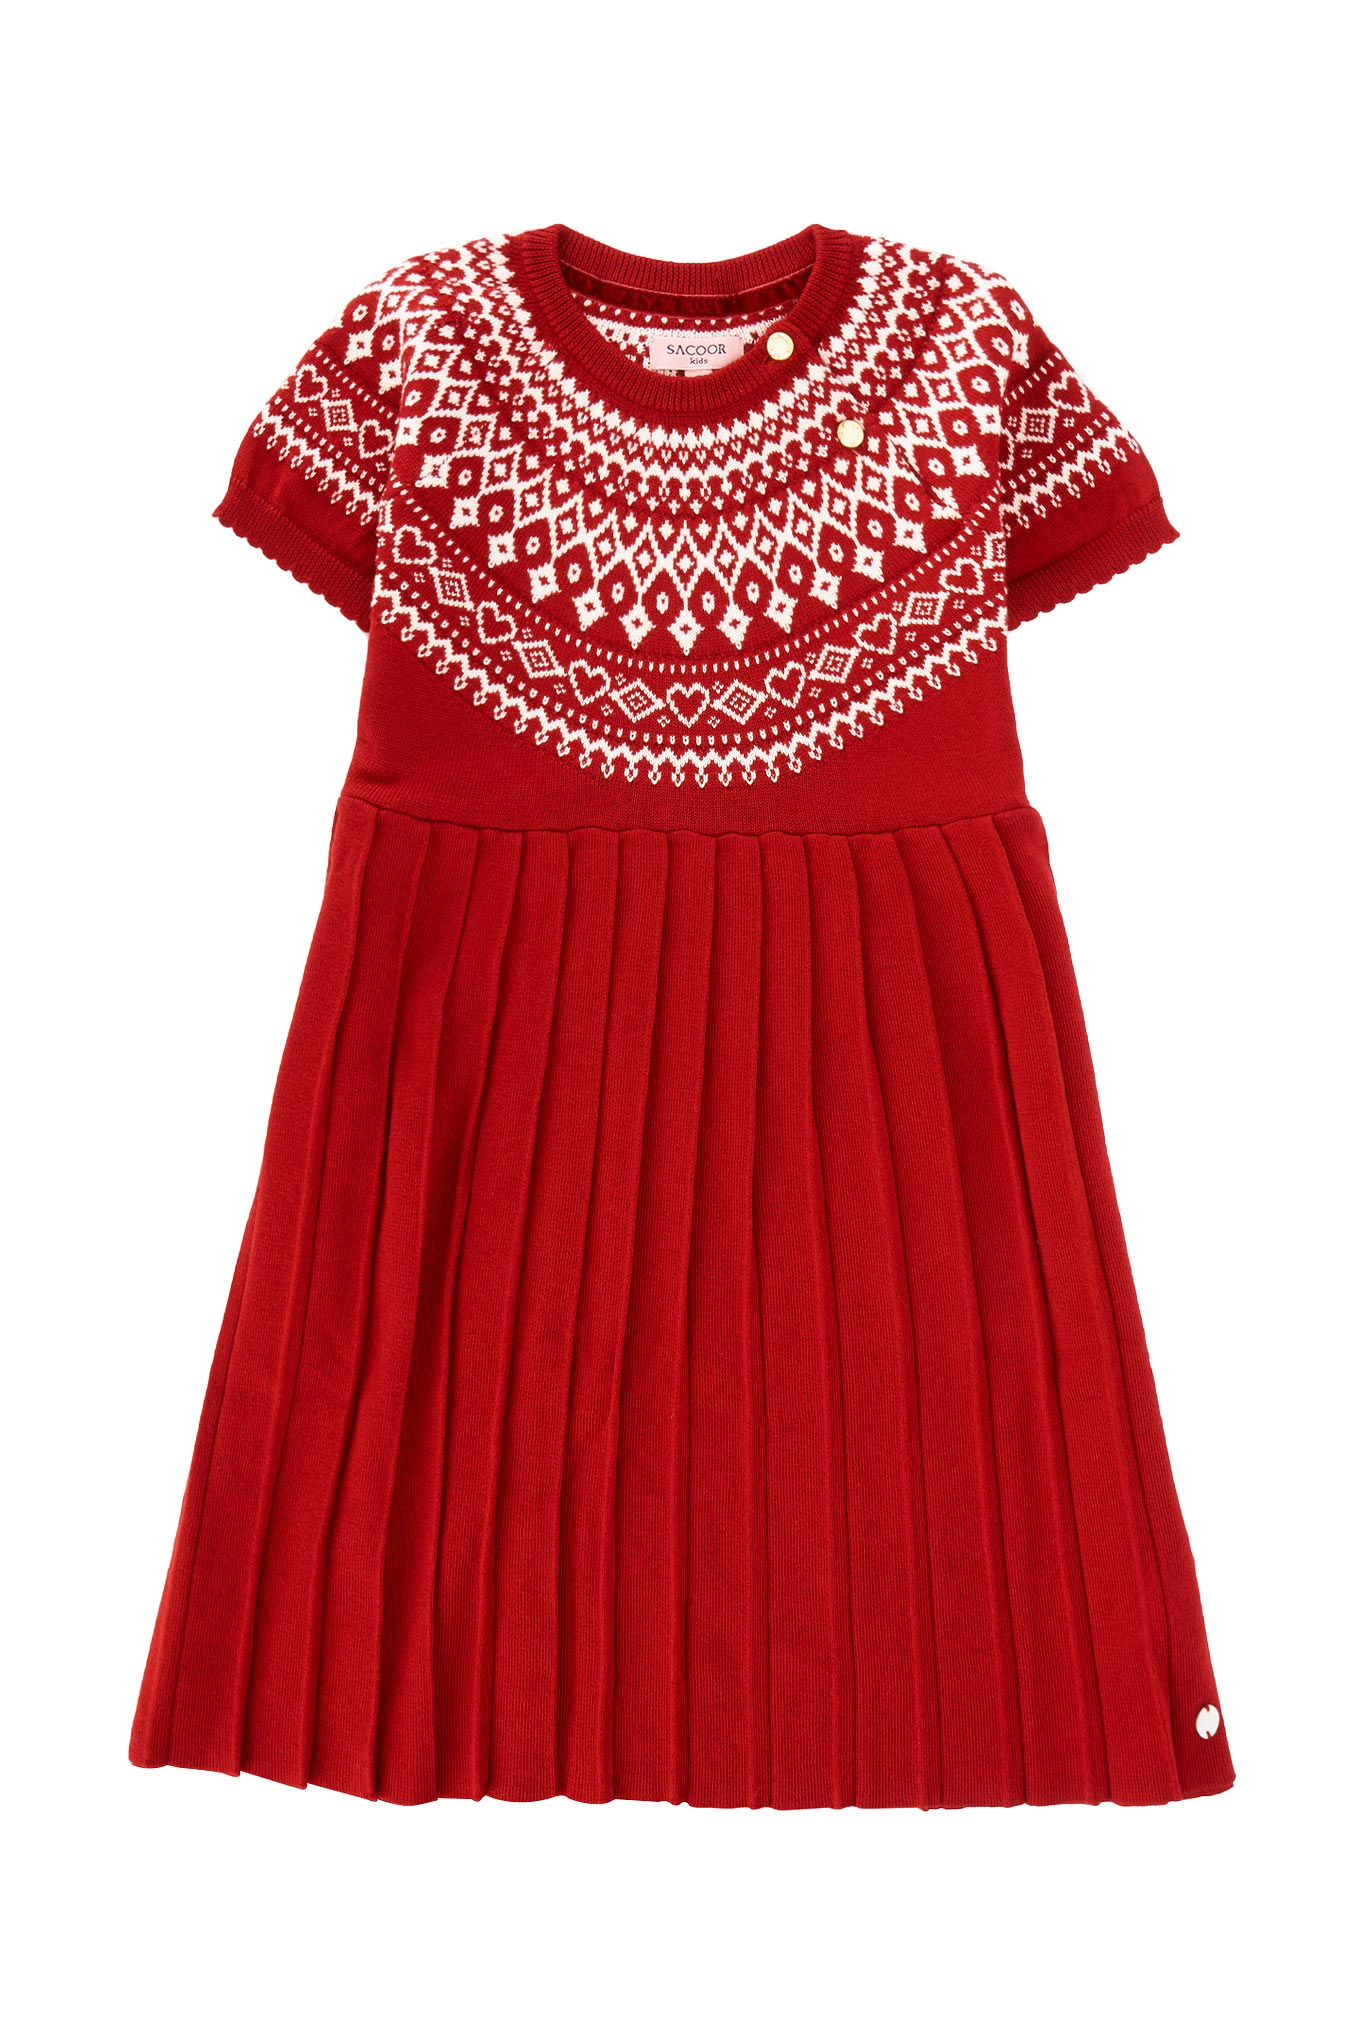 Knitwear Dress Red Casual Girl